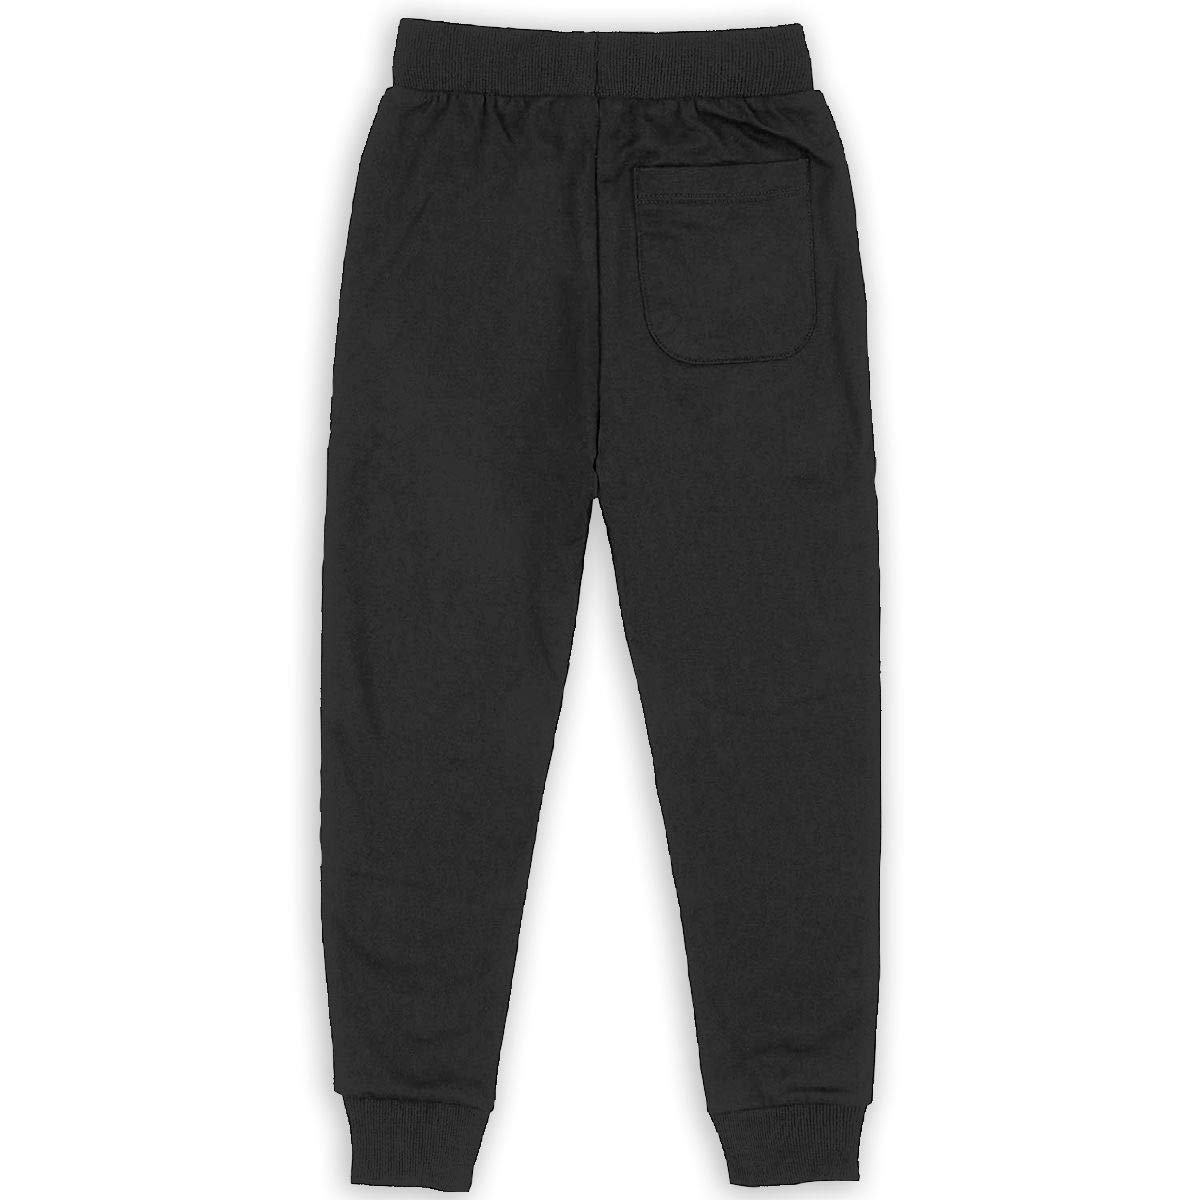 California Republic State Bear Youth Sweatpants Teen Jogger Pants Teen Jogger Pants Black